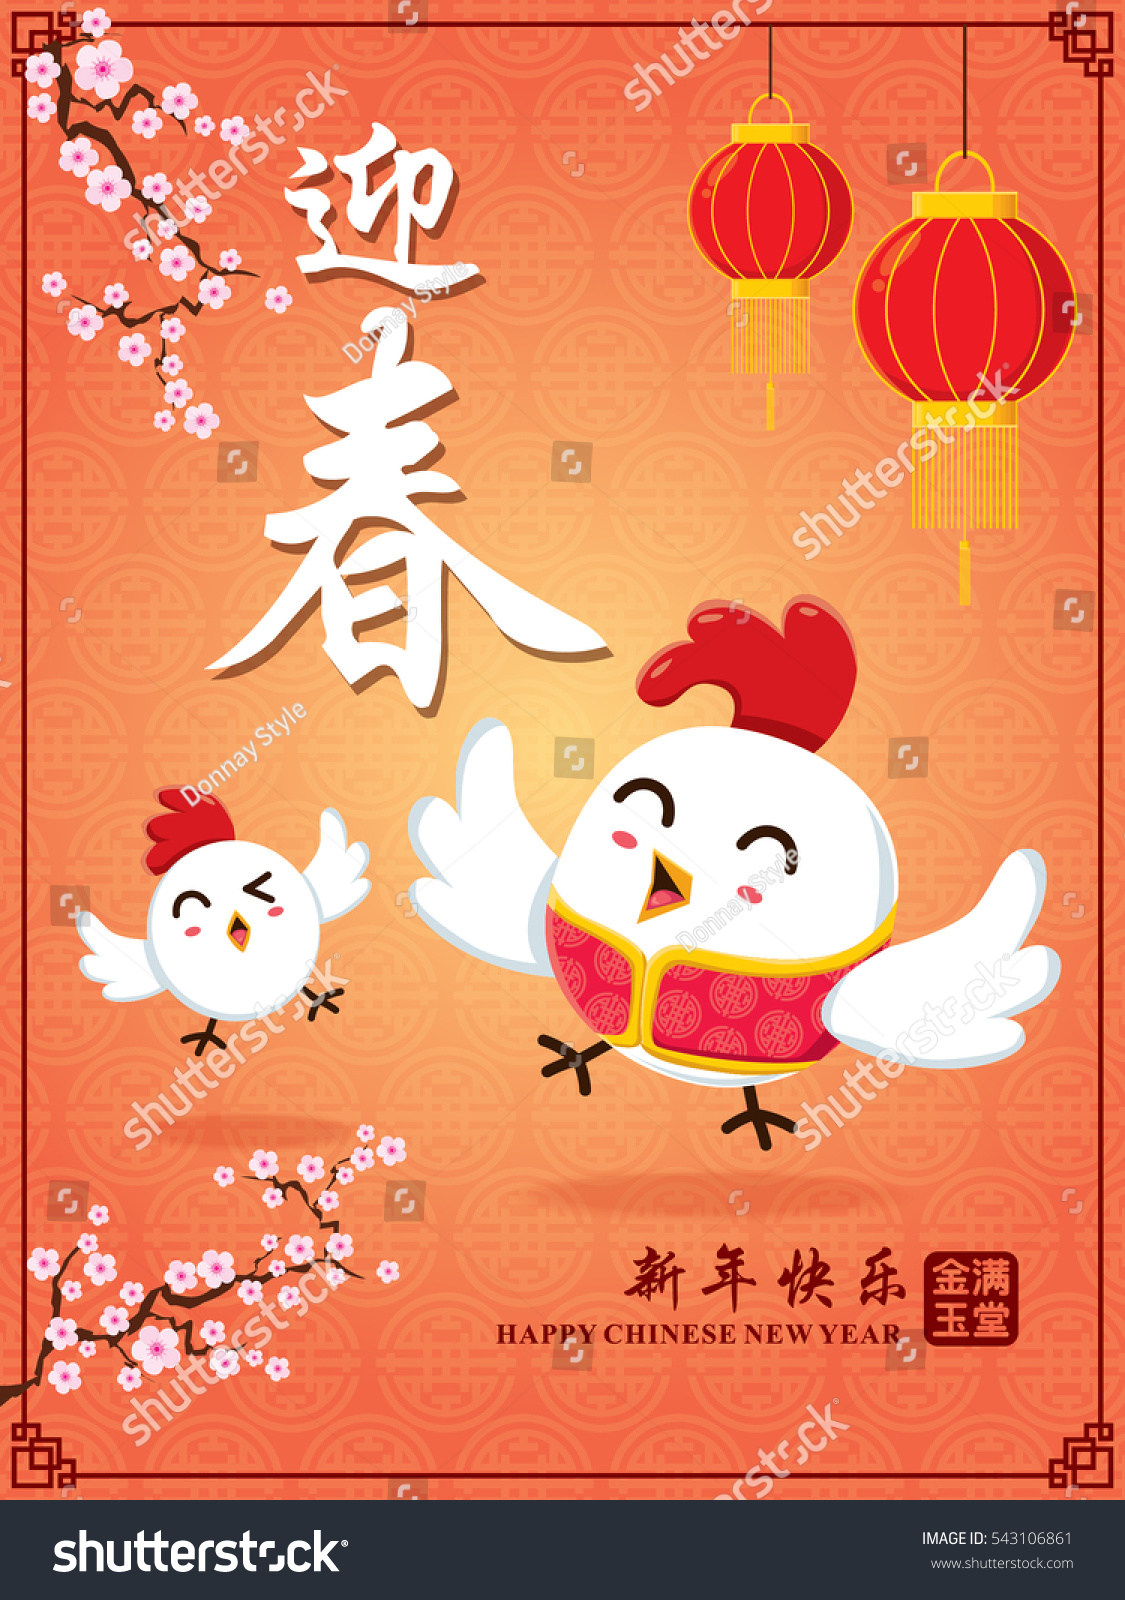 Poster design meaning - Vintage Chinese New Year Poster Design With Chinese Chicken Rooster Character Chinese Wording Meanings